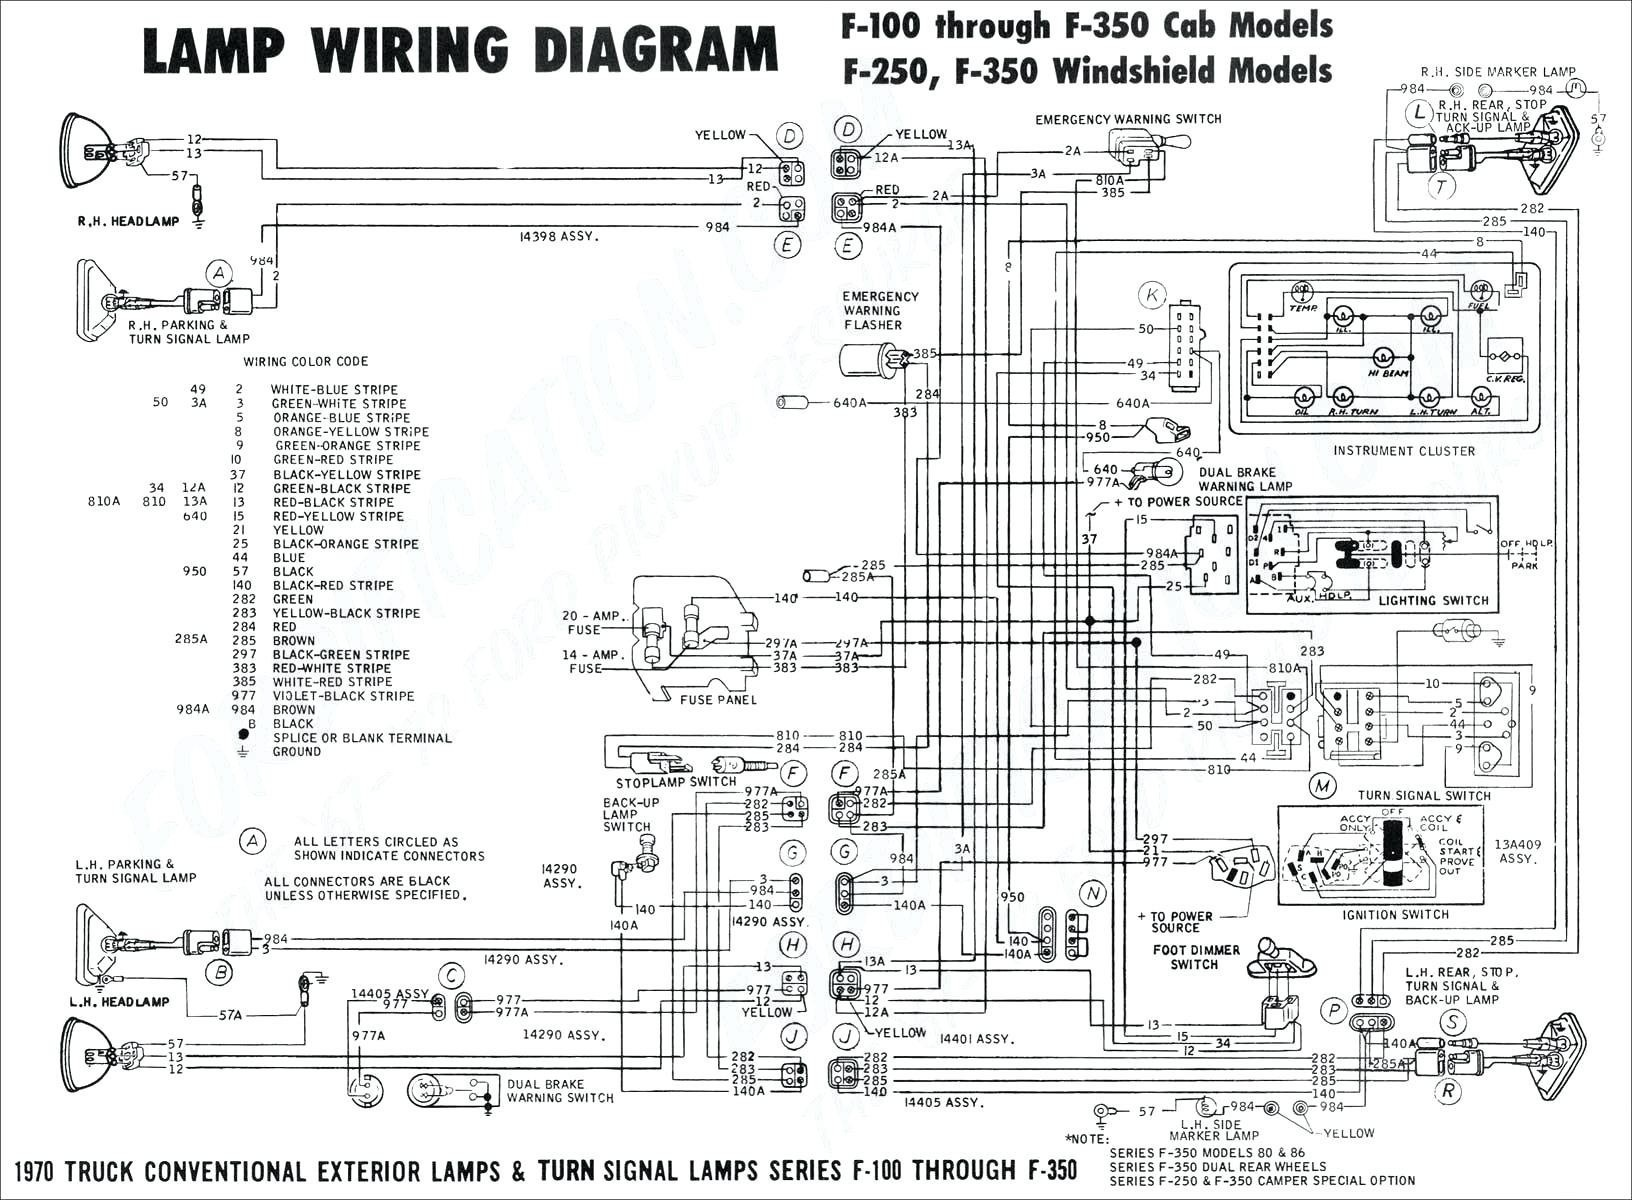 2004 Grand Cherokee Electrical Diagram Pool Light Wiring Diagram Of 2004 Grand Cherokee Electrical Diagram